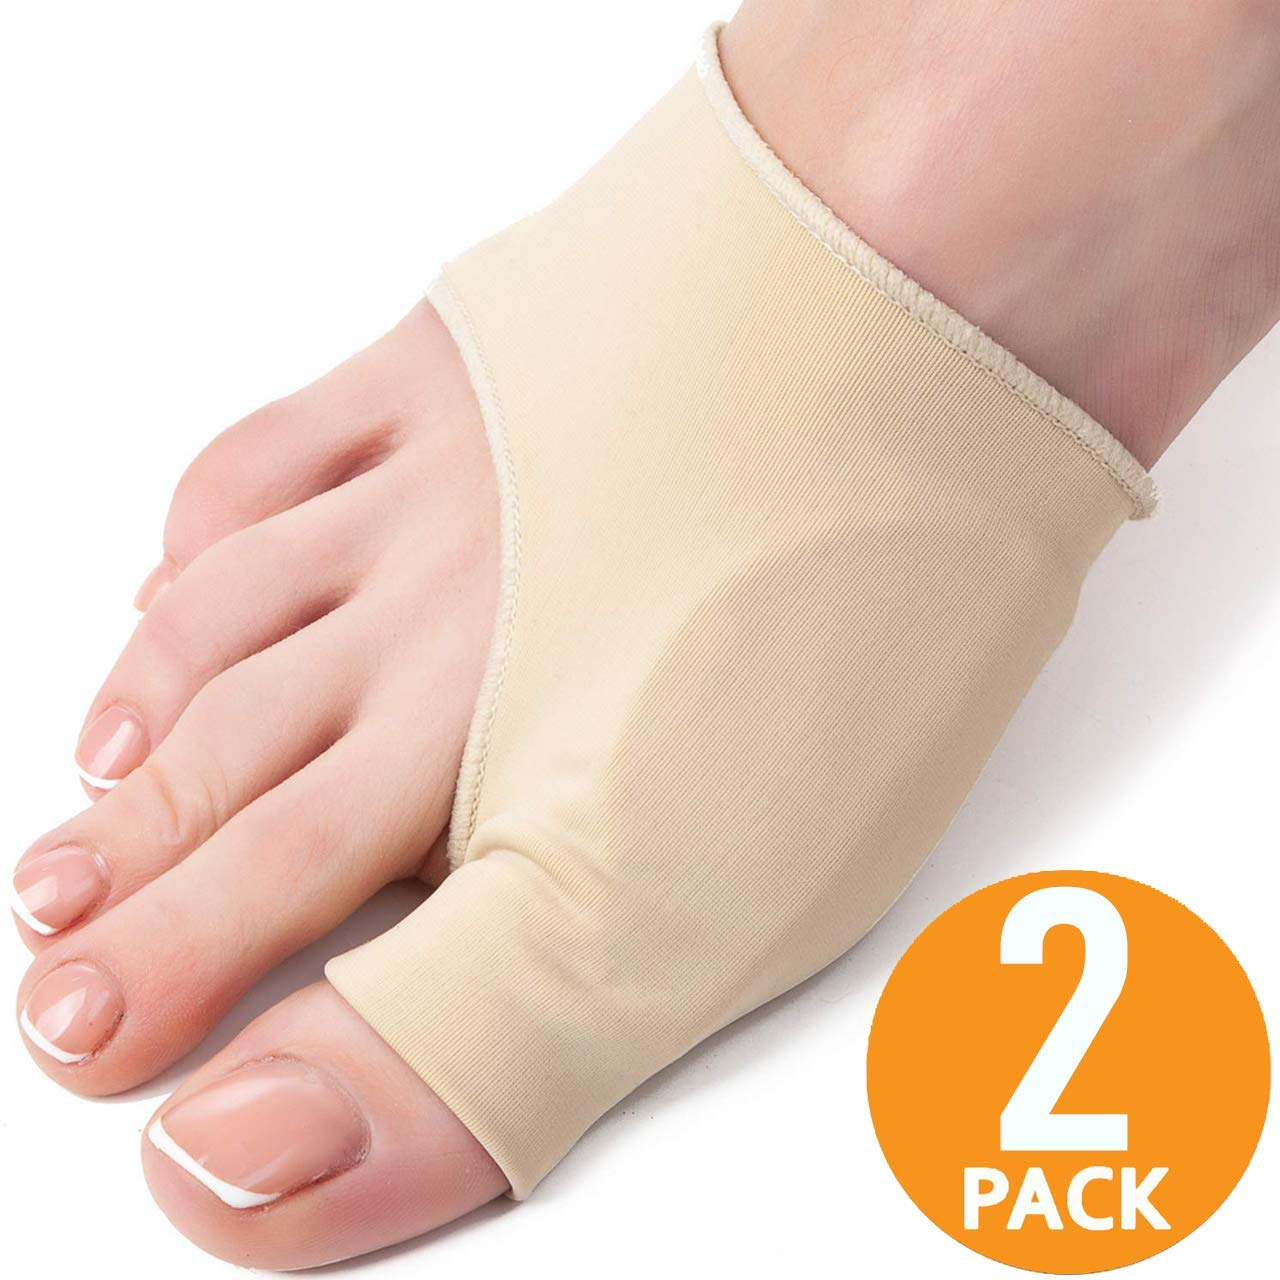 Bunion Corrector Sleeve with Gel Pad - 2-Pack - Elastic Bootie Guard, Shield